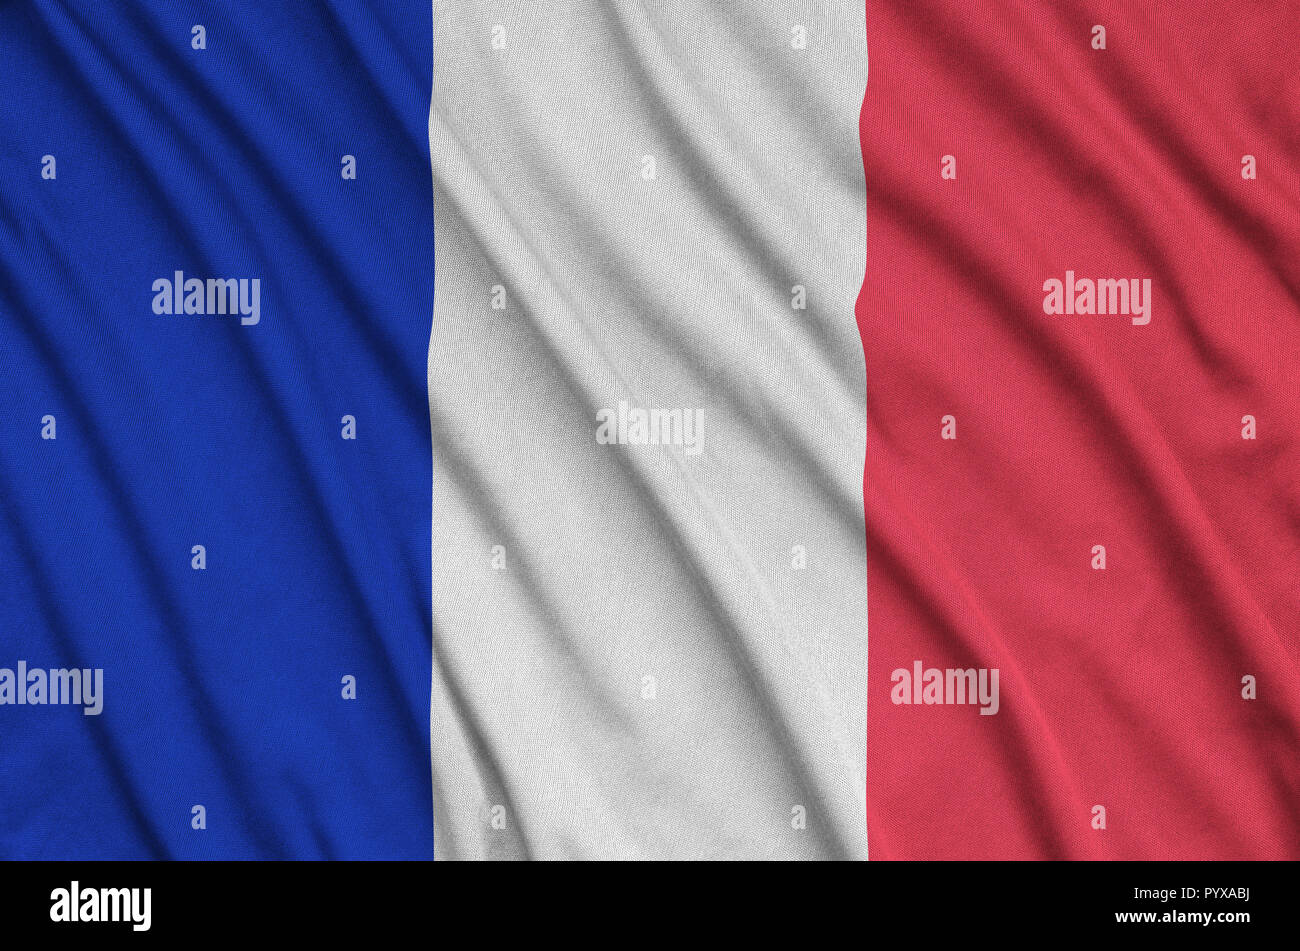 France flag  is depicted on a sports cloth fabric with many folds. Sport team waving banner - Stock Image